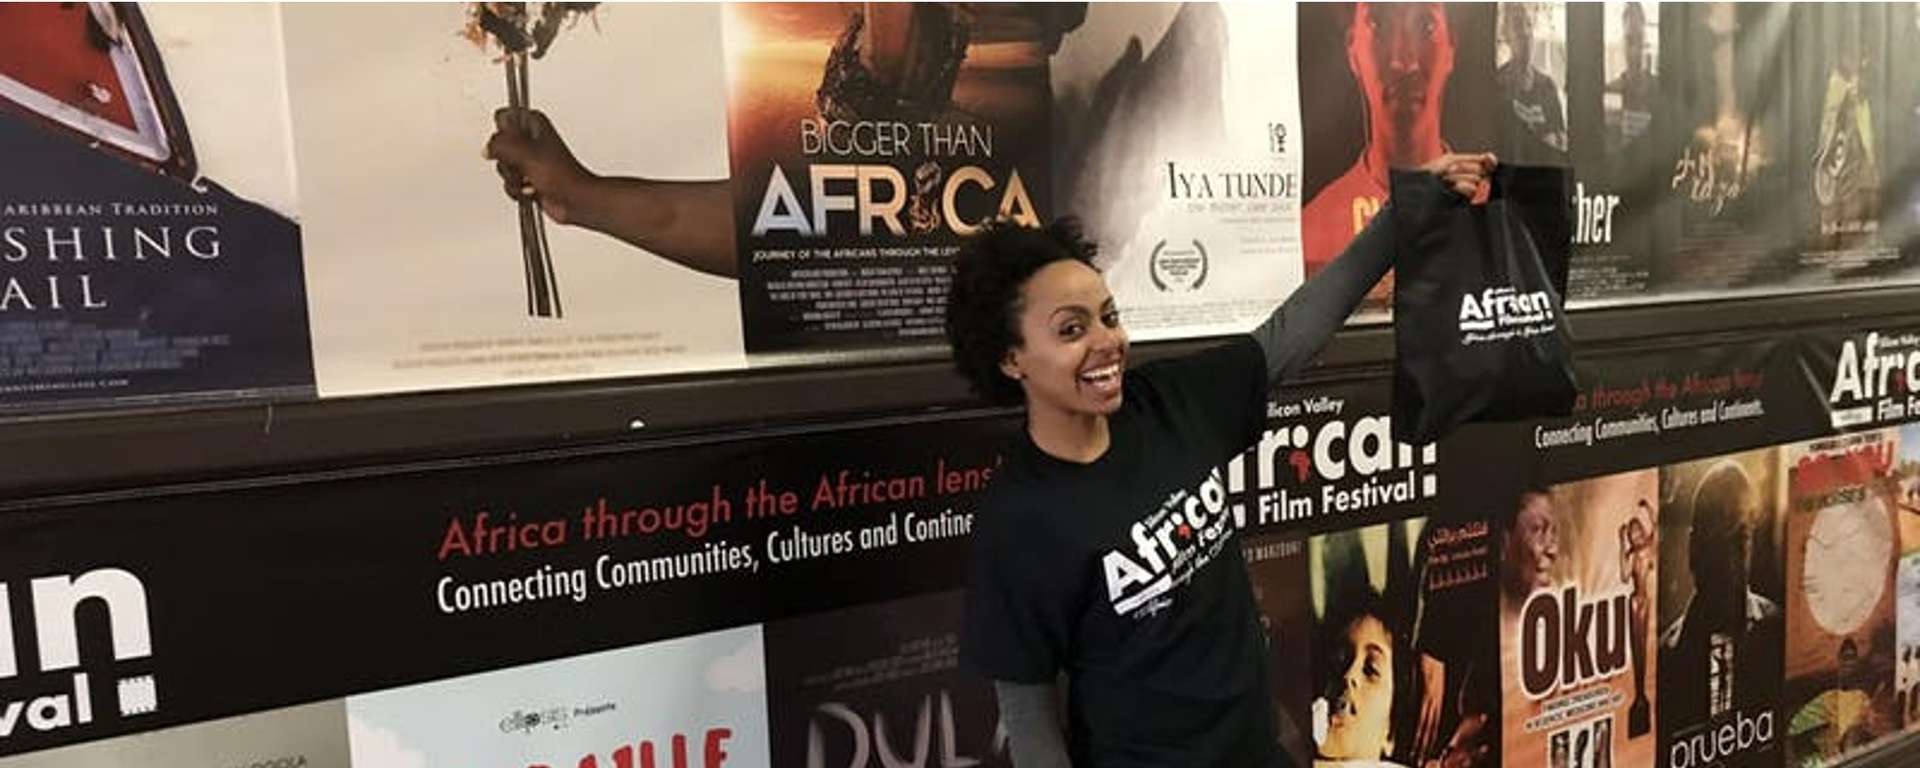 Silicon Valley African Film Festival (SVAFF) - 10th Annual Silicon Valley African Film Festival Movemeback African event cover image